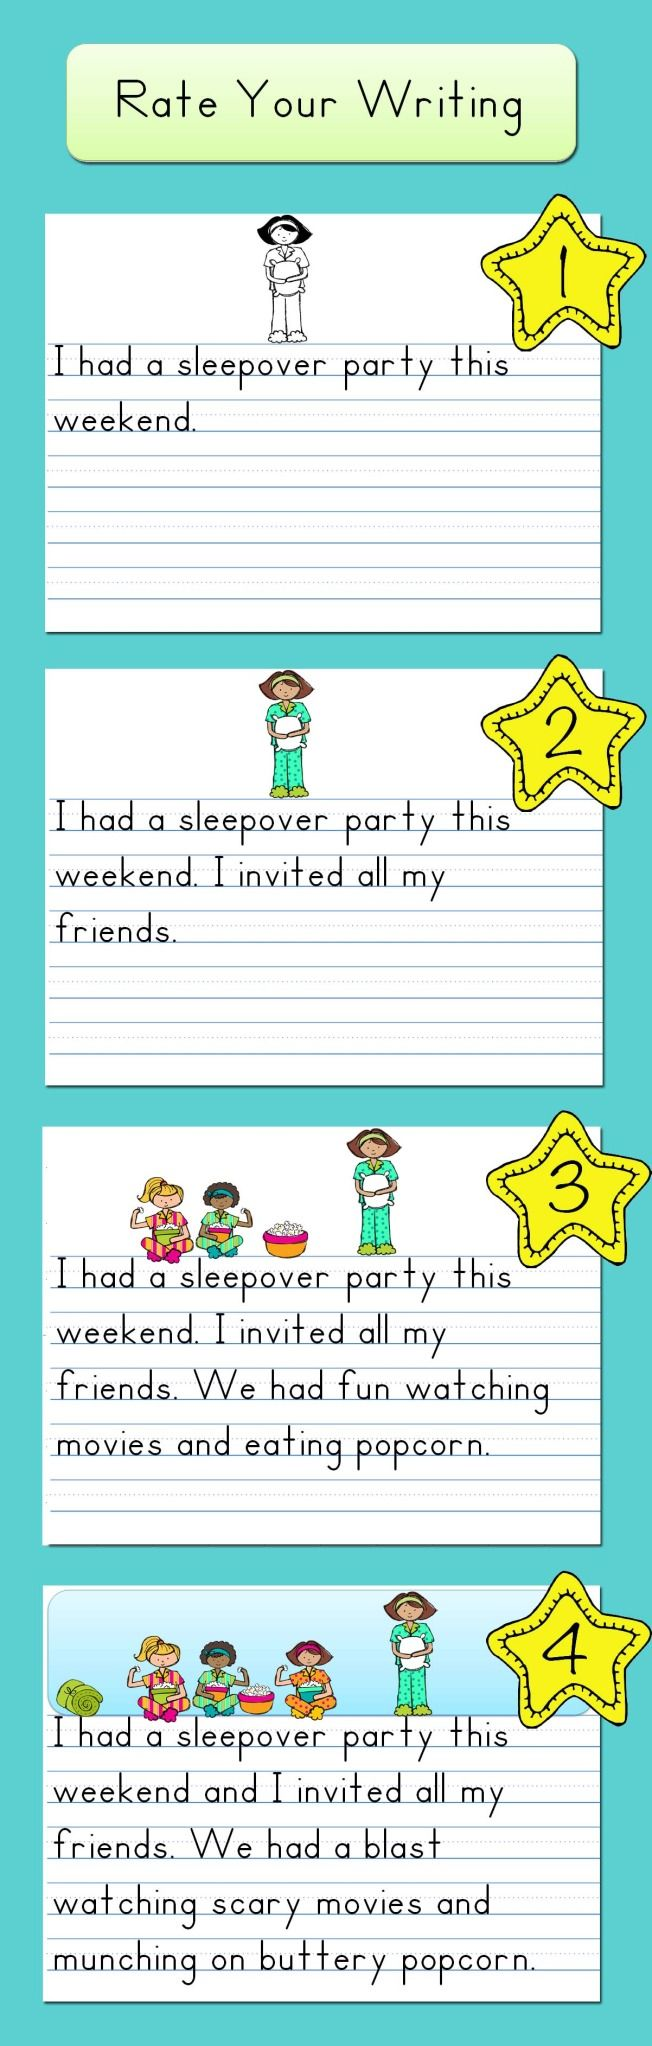 Rate Your Writing Free Download: used by a first grader teacher I know and she LOVED it.